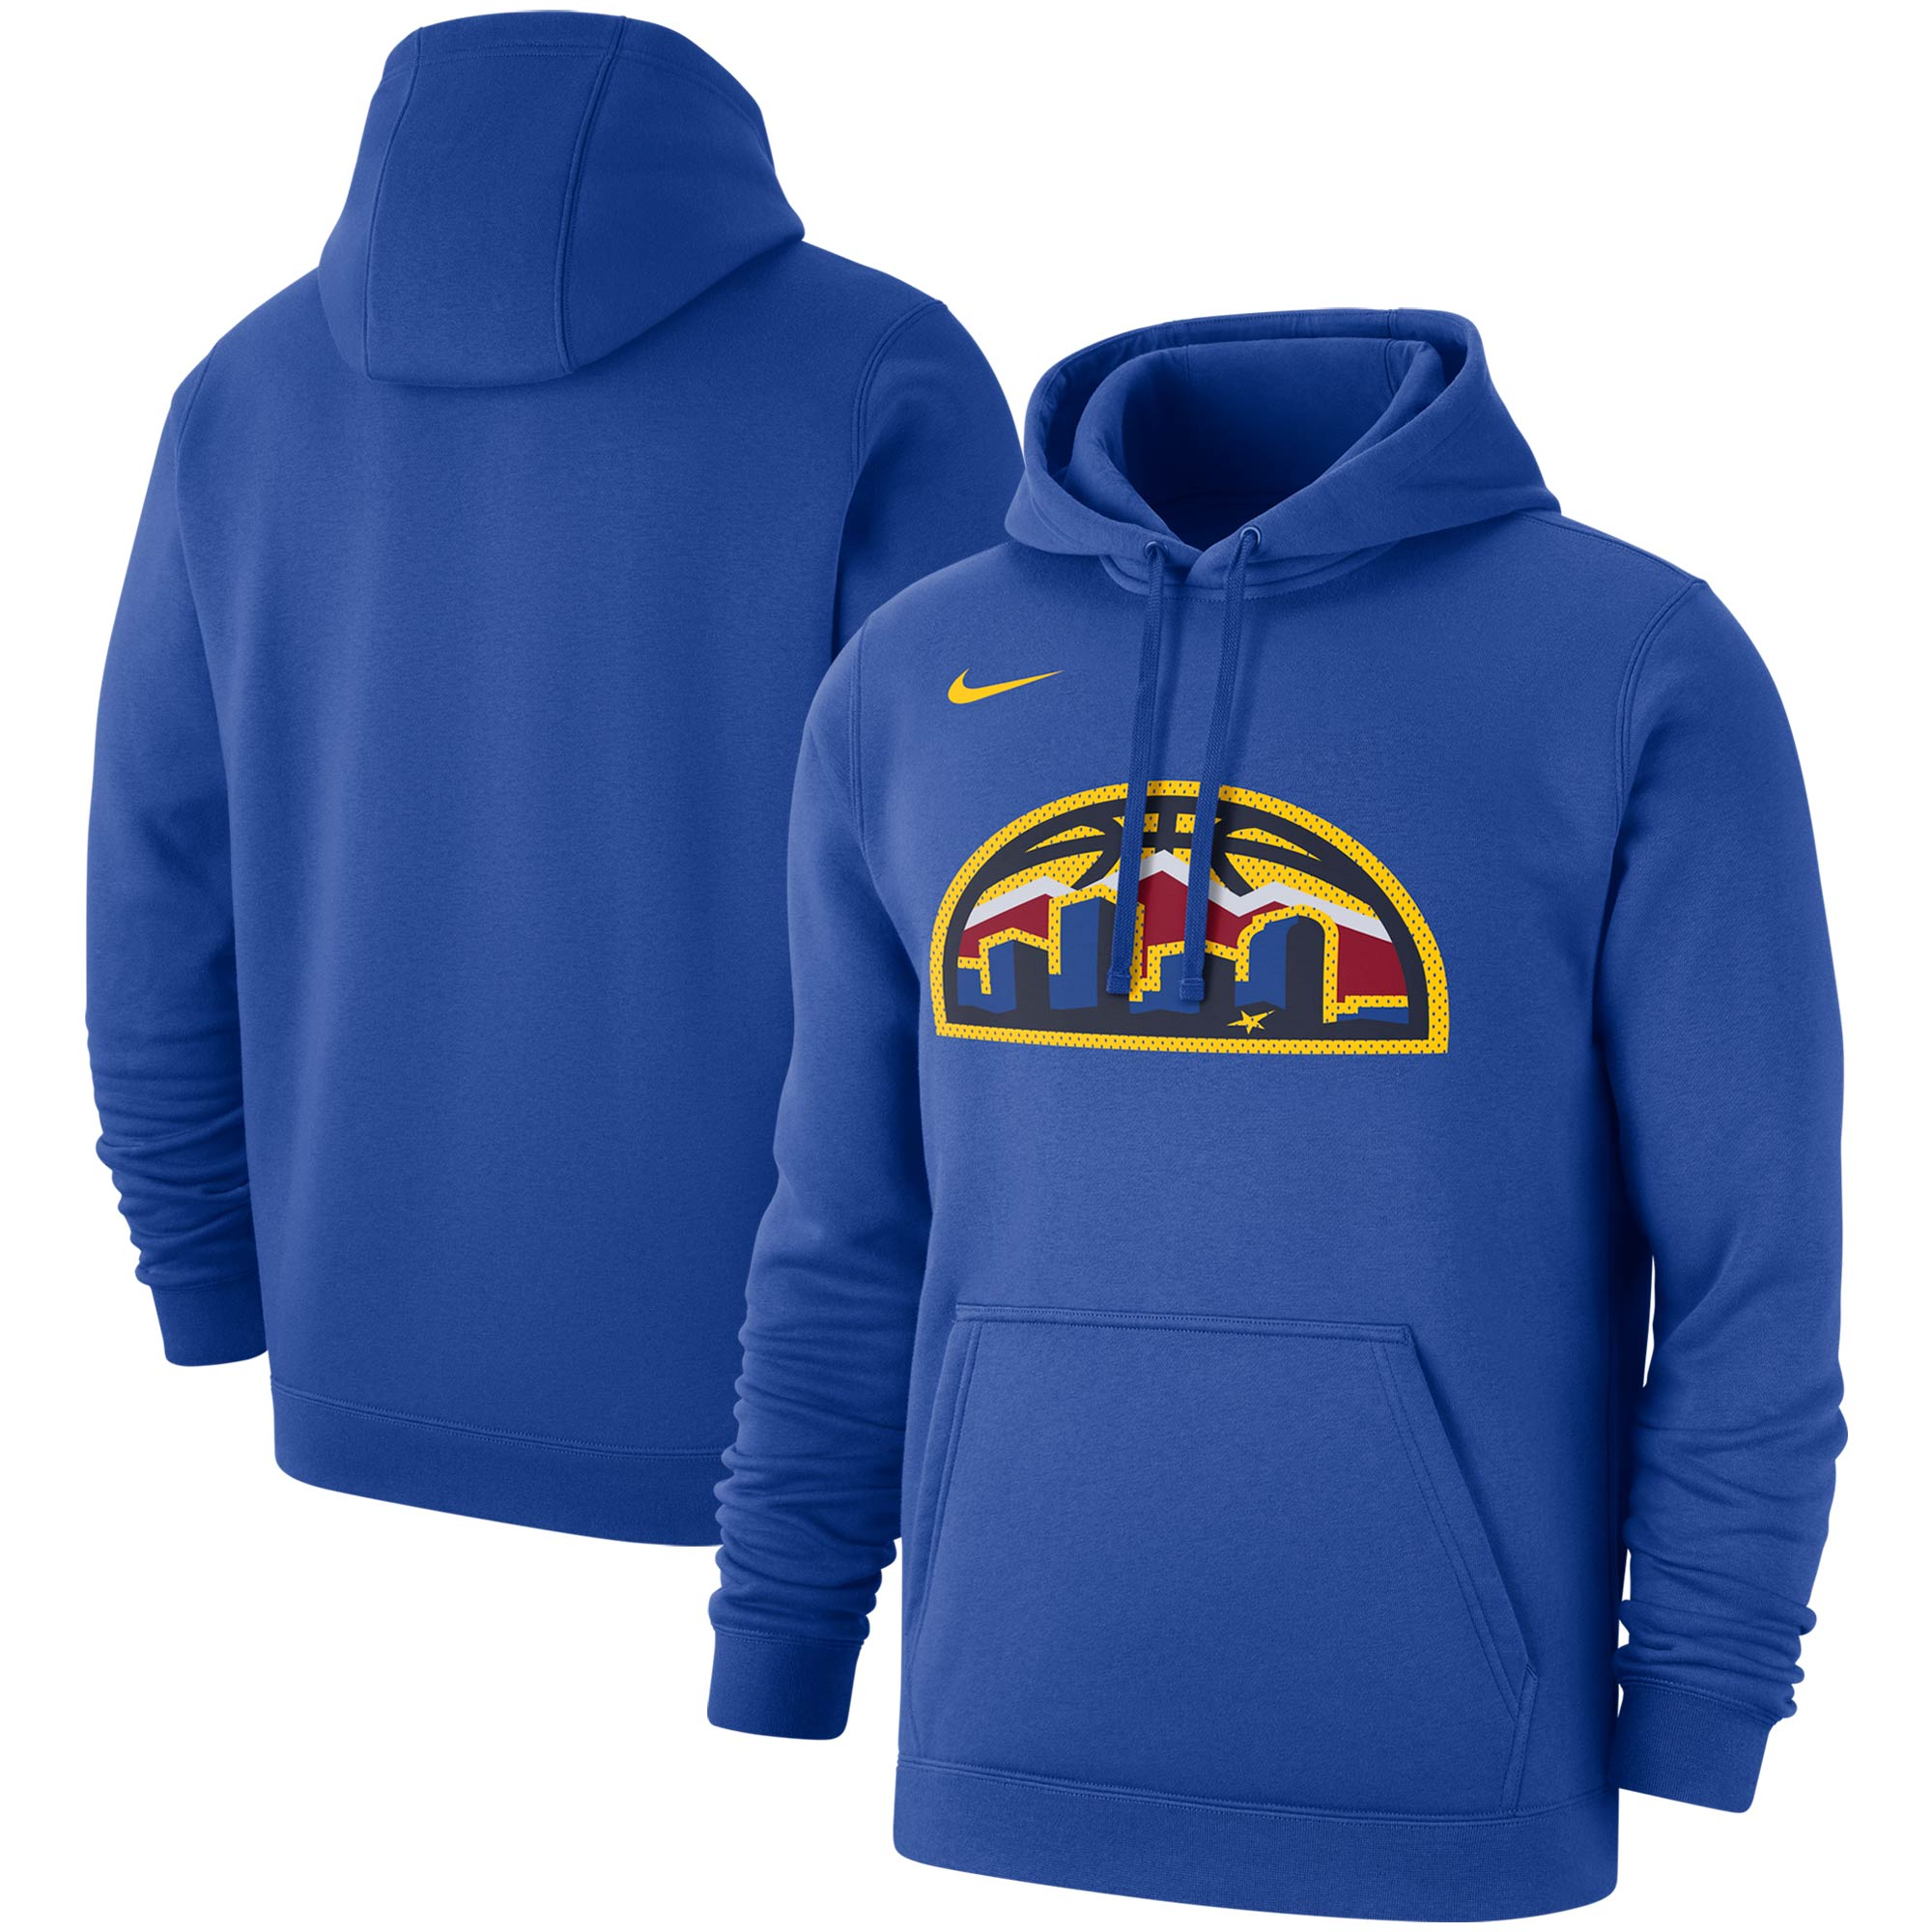 Denver Nuggets Nike 2019/20 Statement Edition Club Pullover Hoodie - Blue